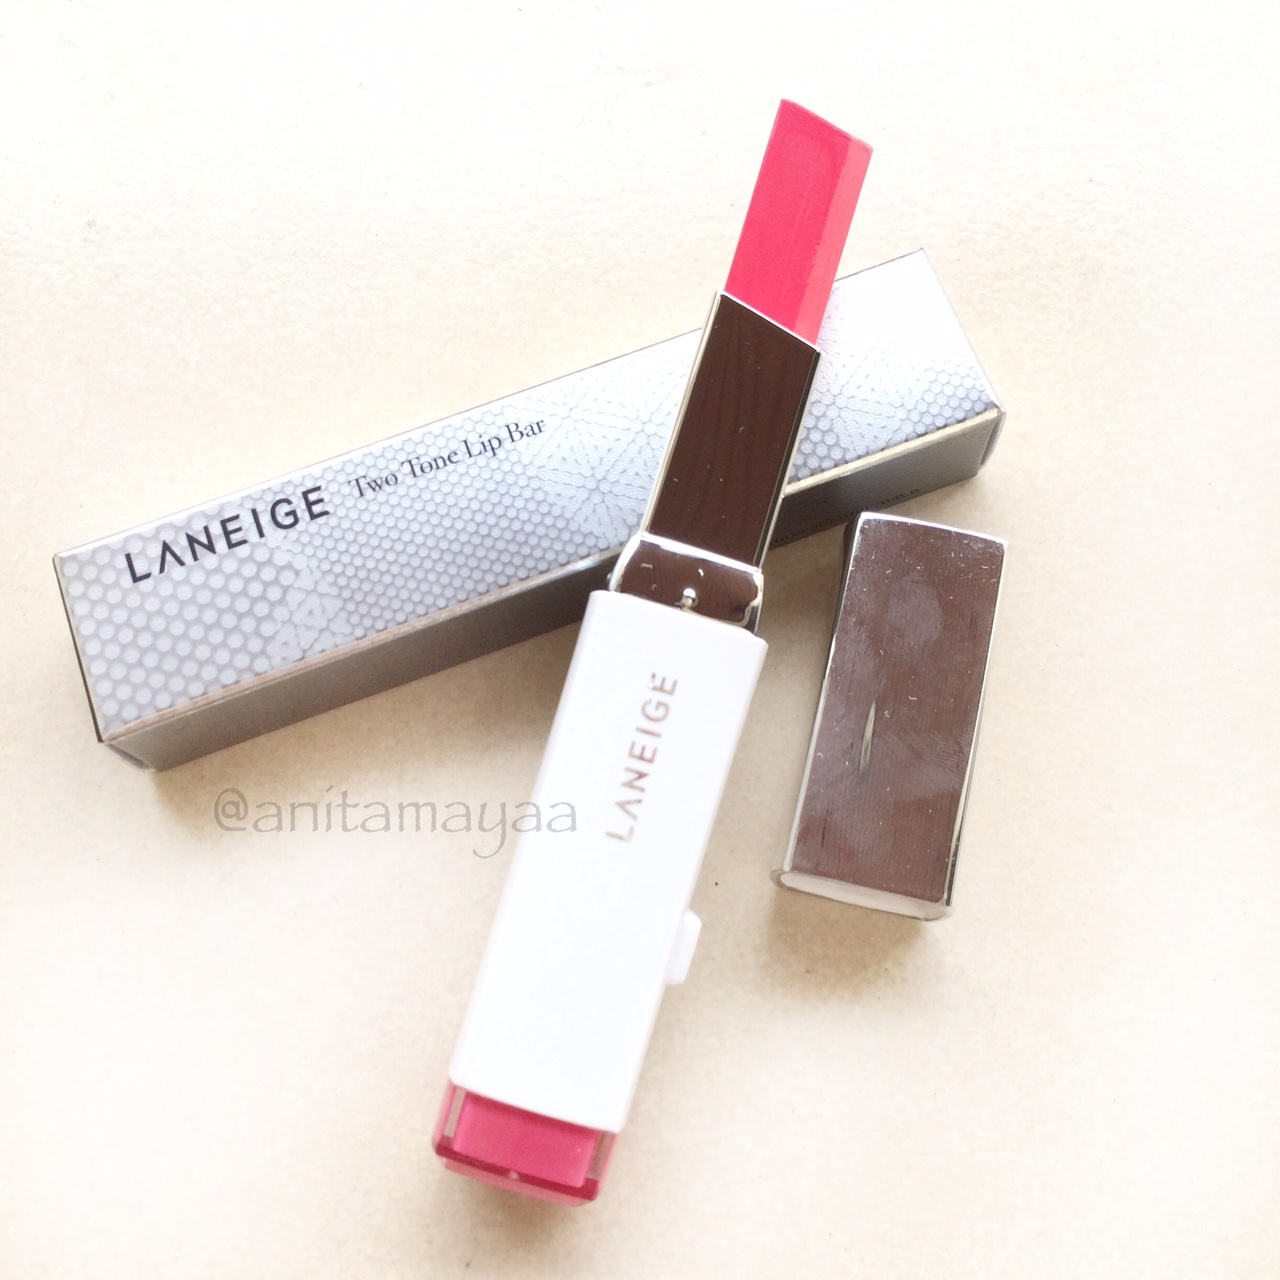 [REVIEW] Laneige Two Tone Lip Bar in shade No.6 Pink Step